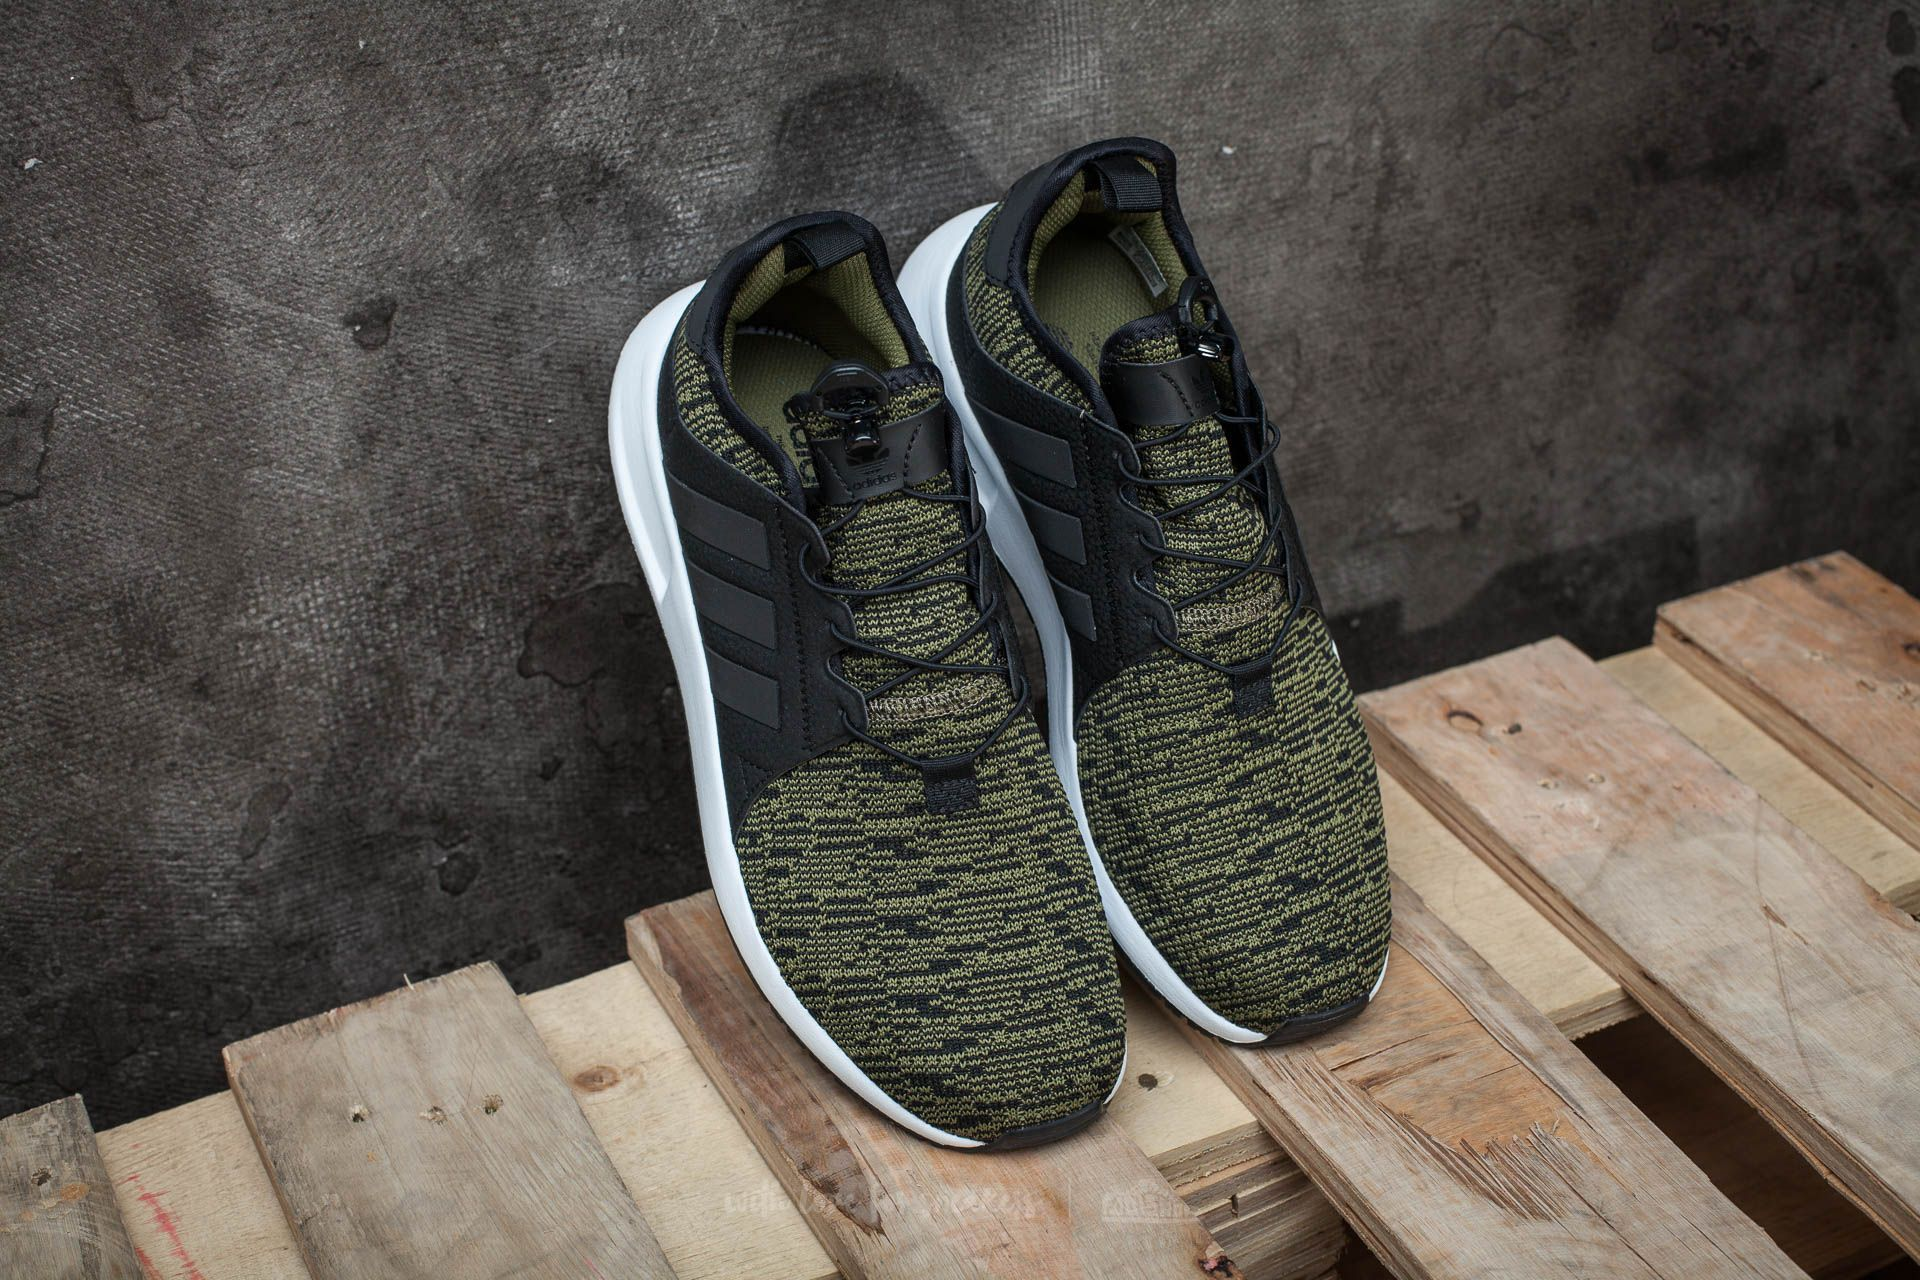 7784260d2 ADIDAS X PLR  adidas  nmd  shoes  sneaker  sneakerhead  style  outfit   fashion  menstyle  trendway  trends  allstar